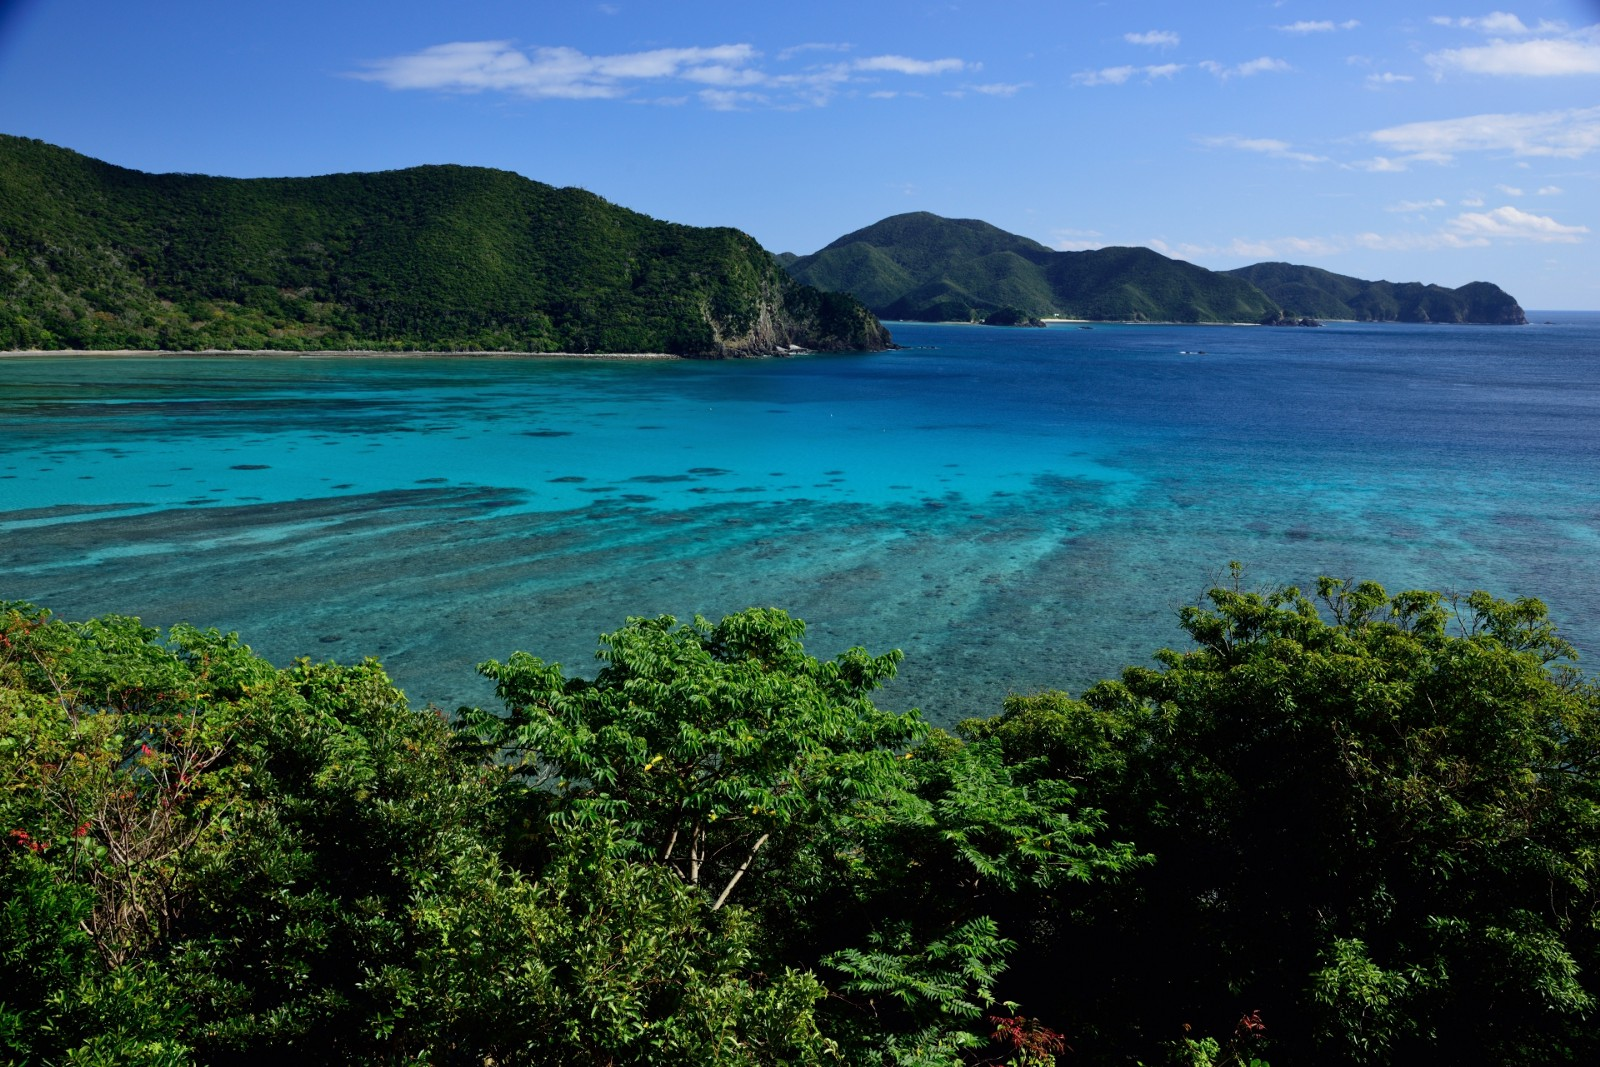 Amami Oshima's beautiful ocean and rich nature